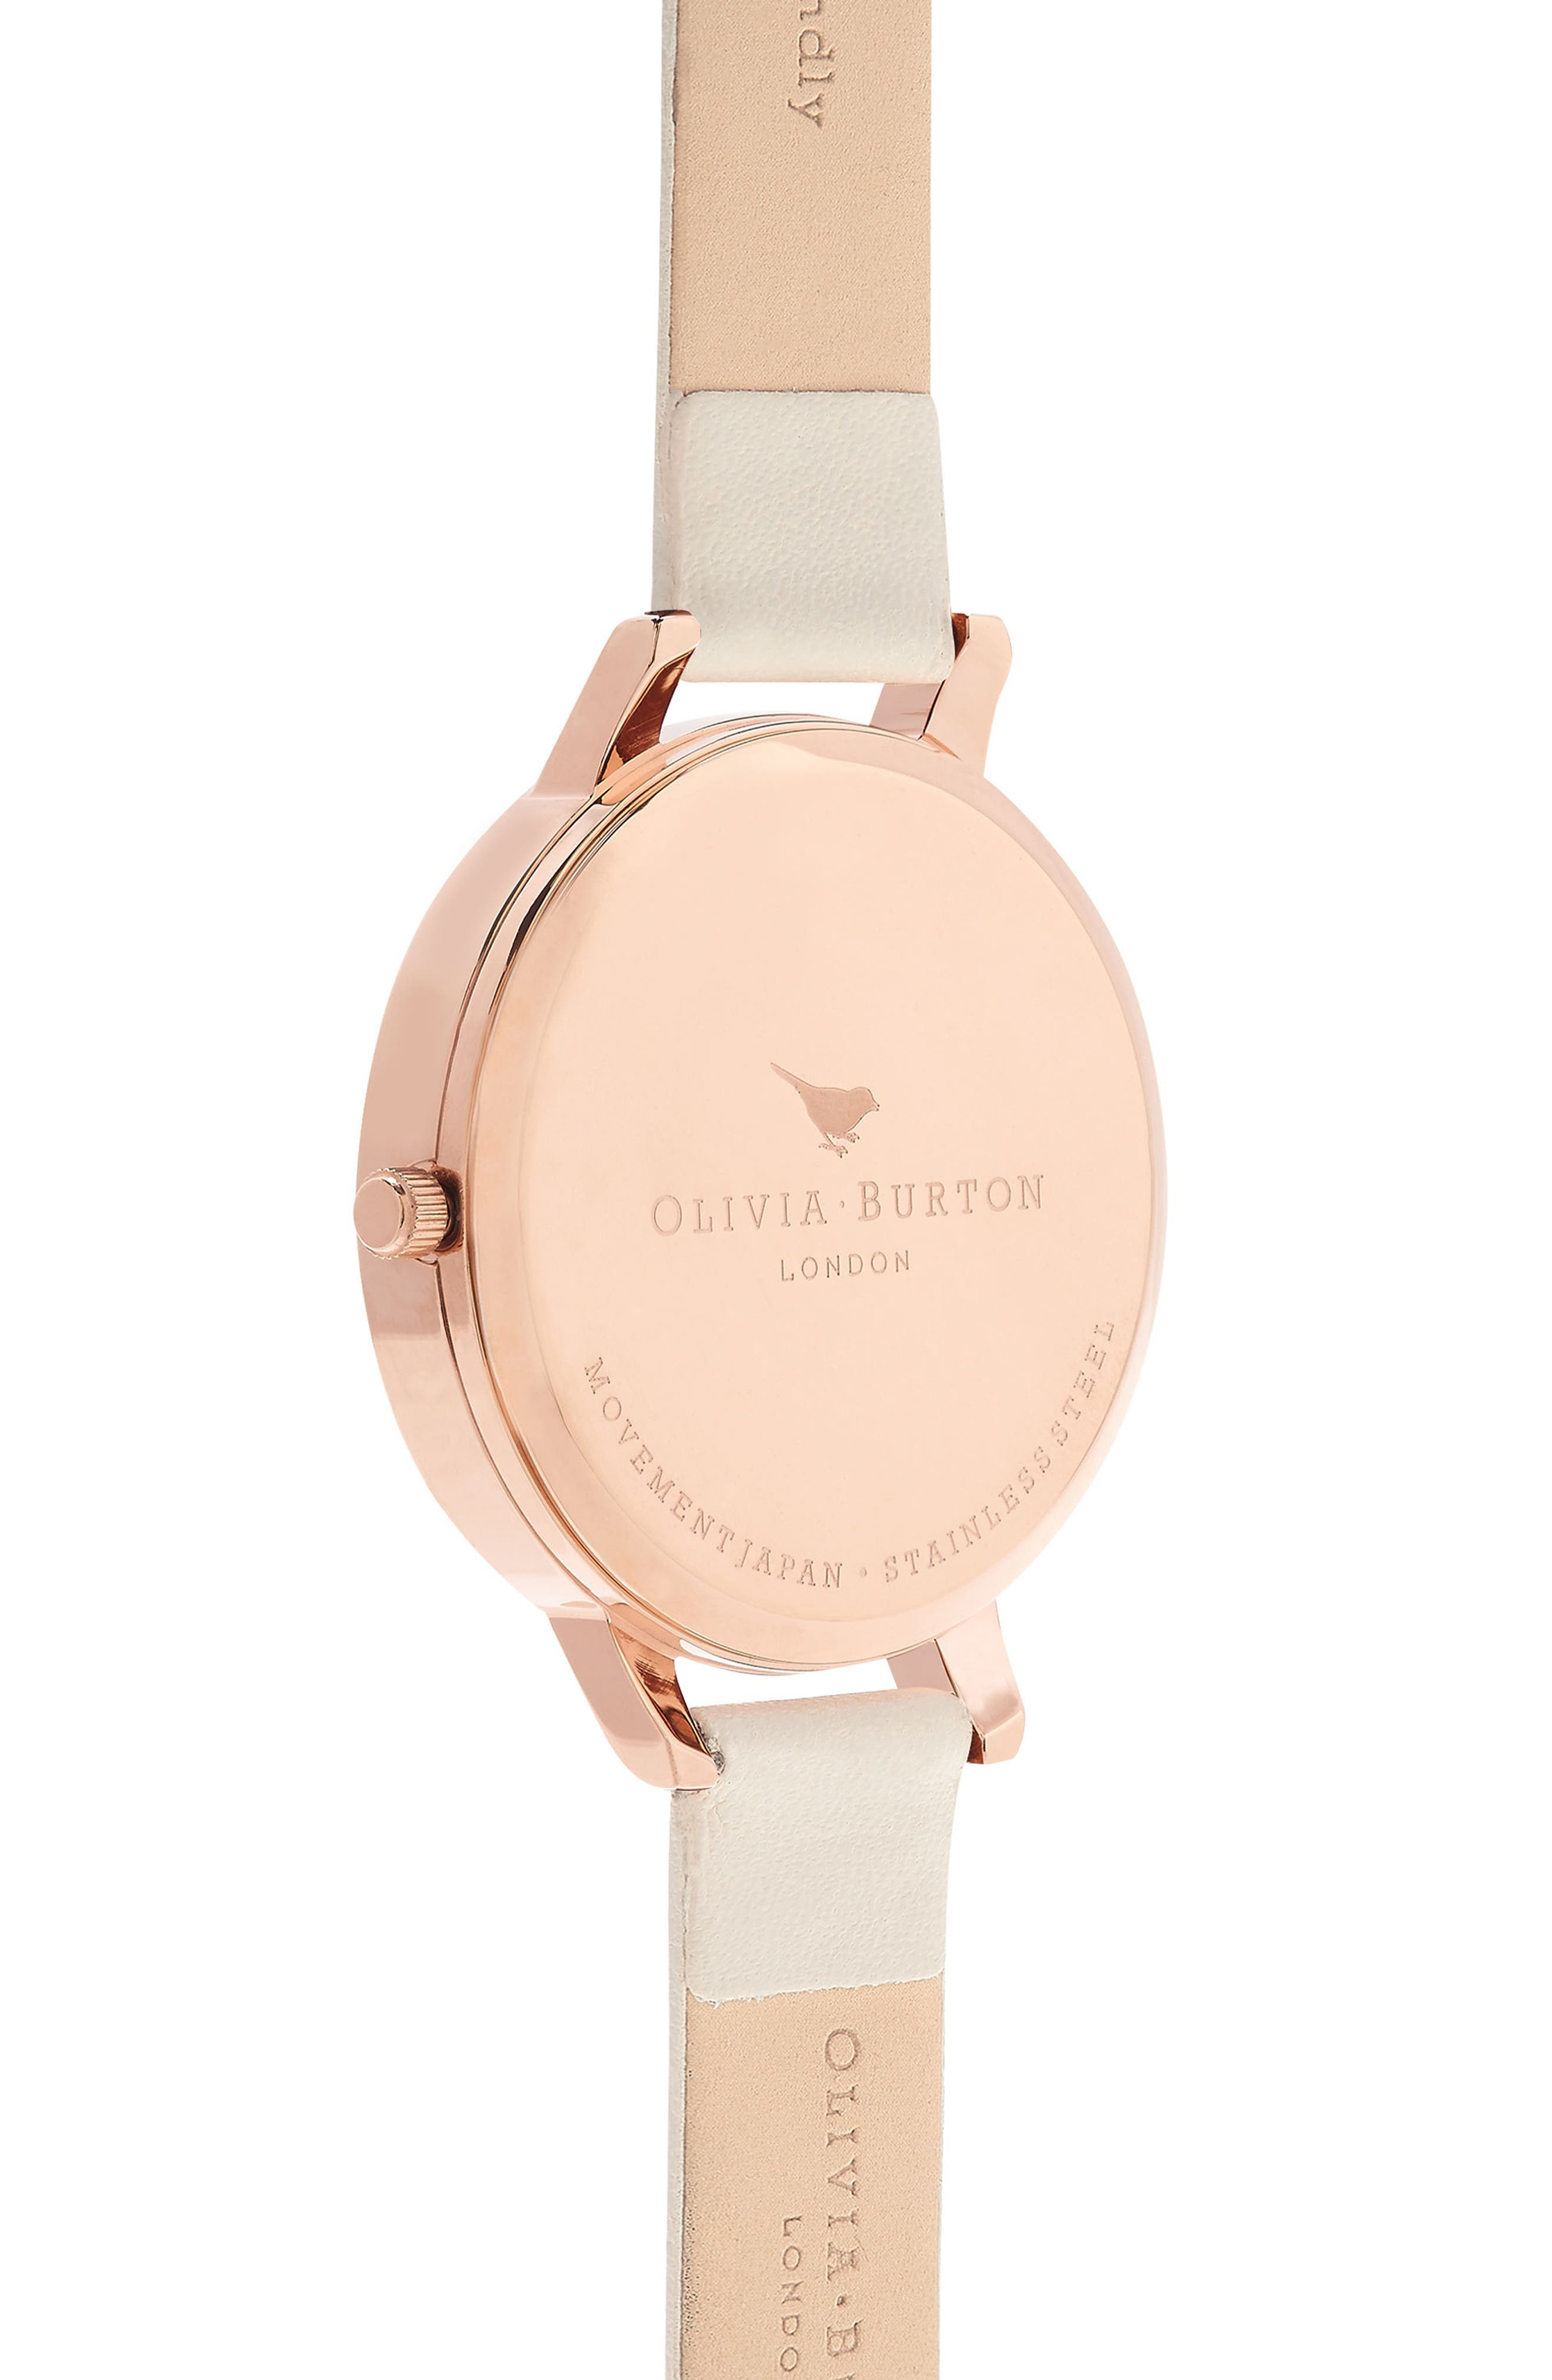 Lace Detail Faux Leather Strap Watch, 38mm,                             Alternate thumbnail 3, color,                             Nude/ Grey Floral/ Rose Gold